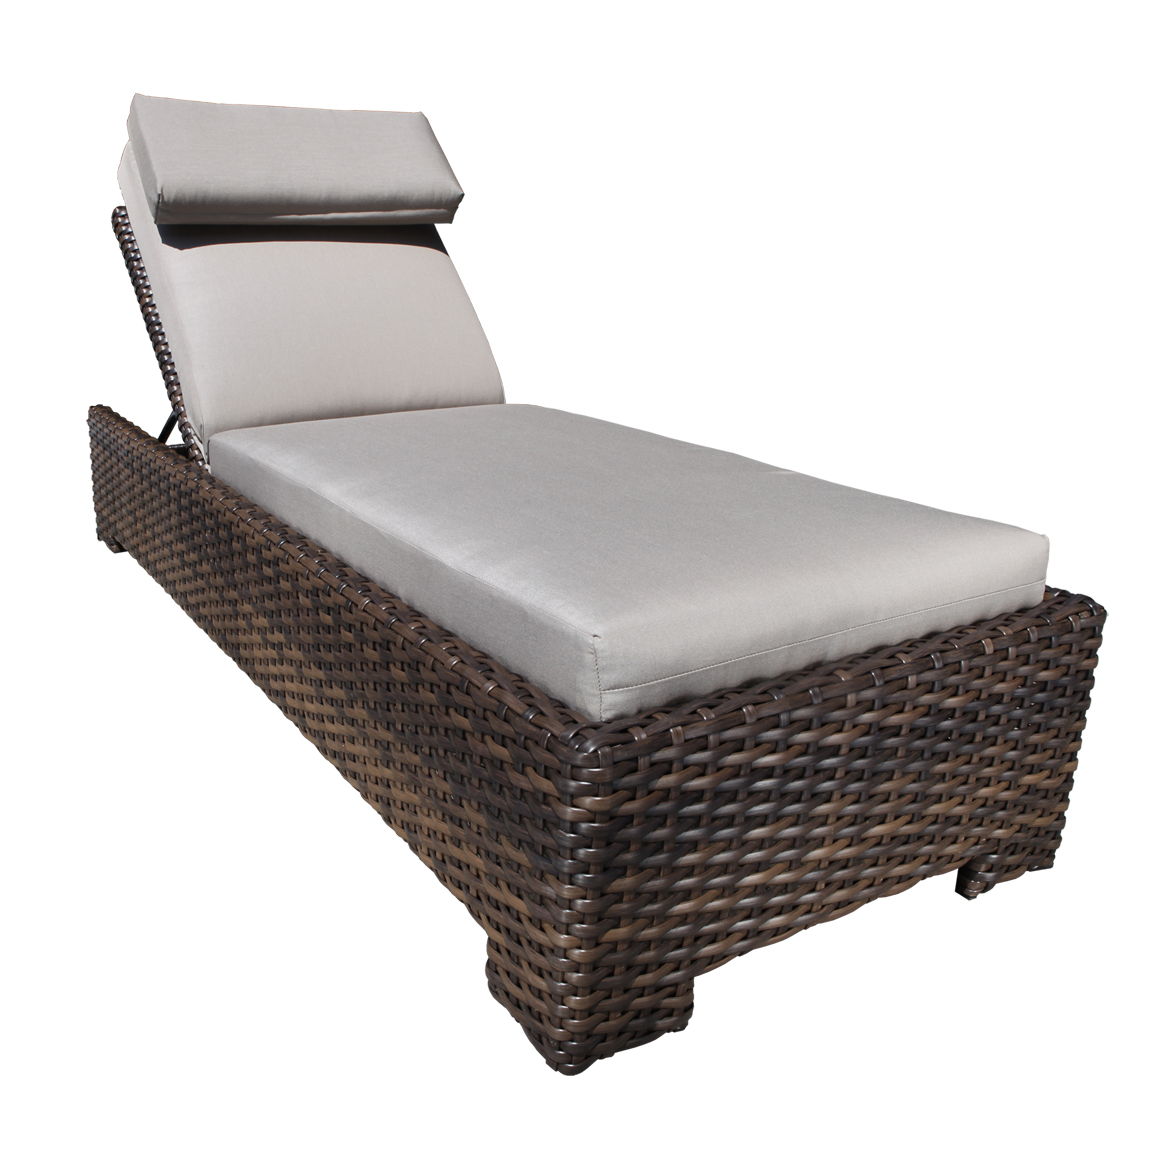 patio lounge chairs patio outdoor chaise lounge chairs OKCWOJH